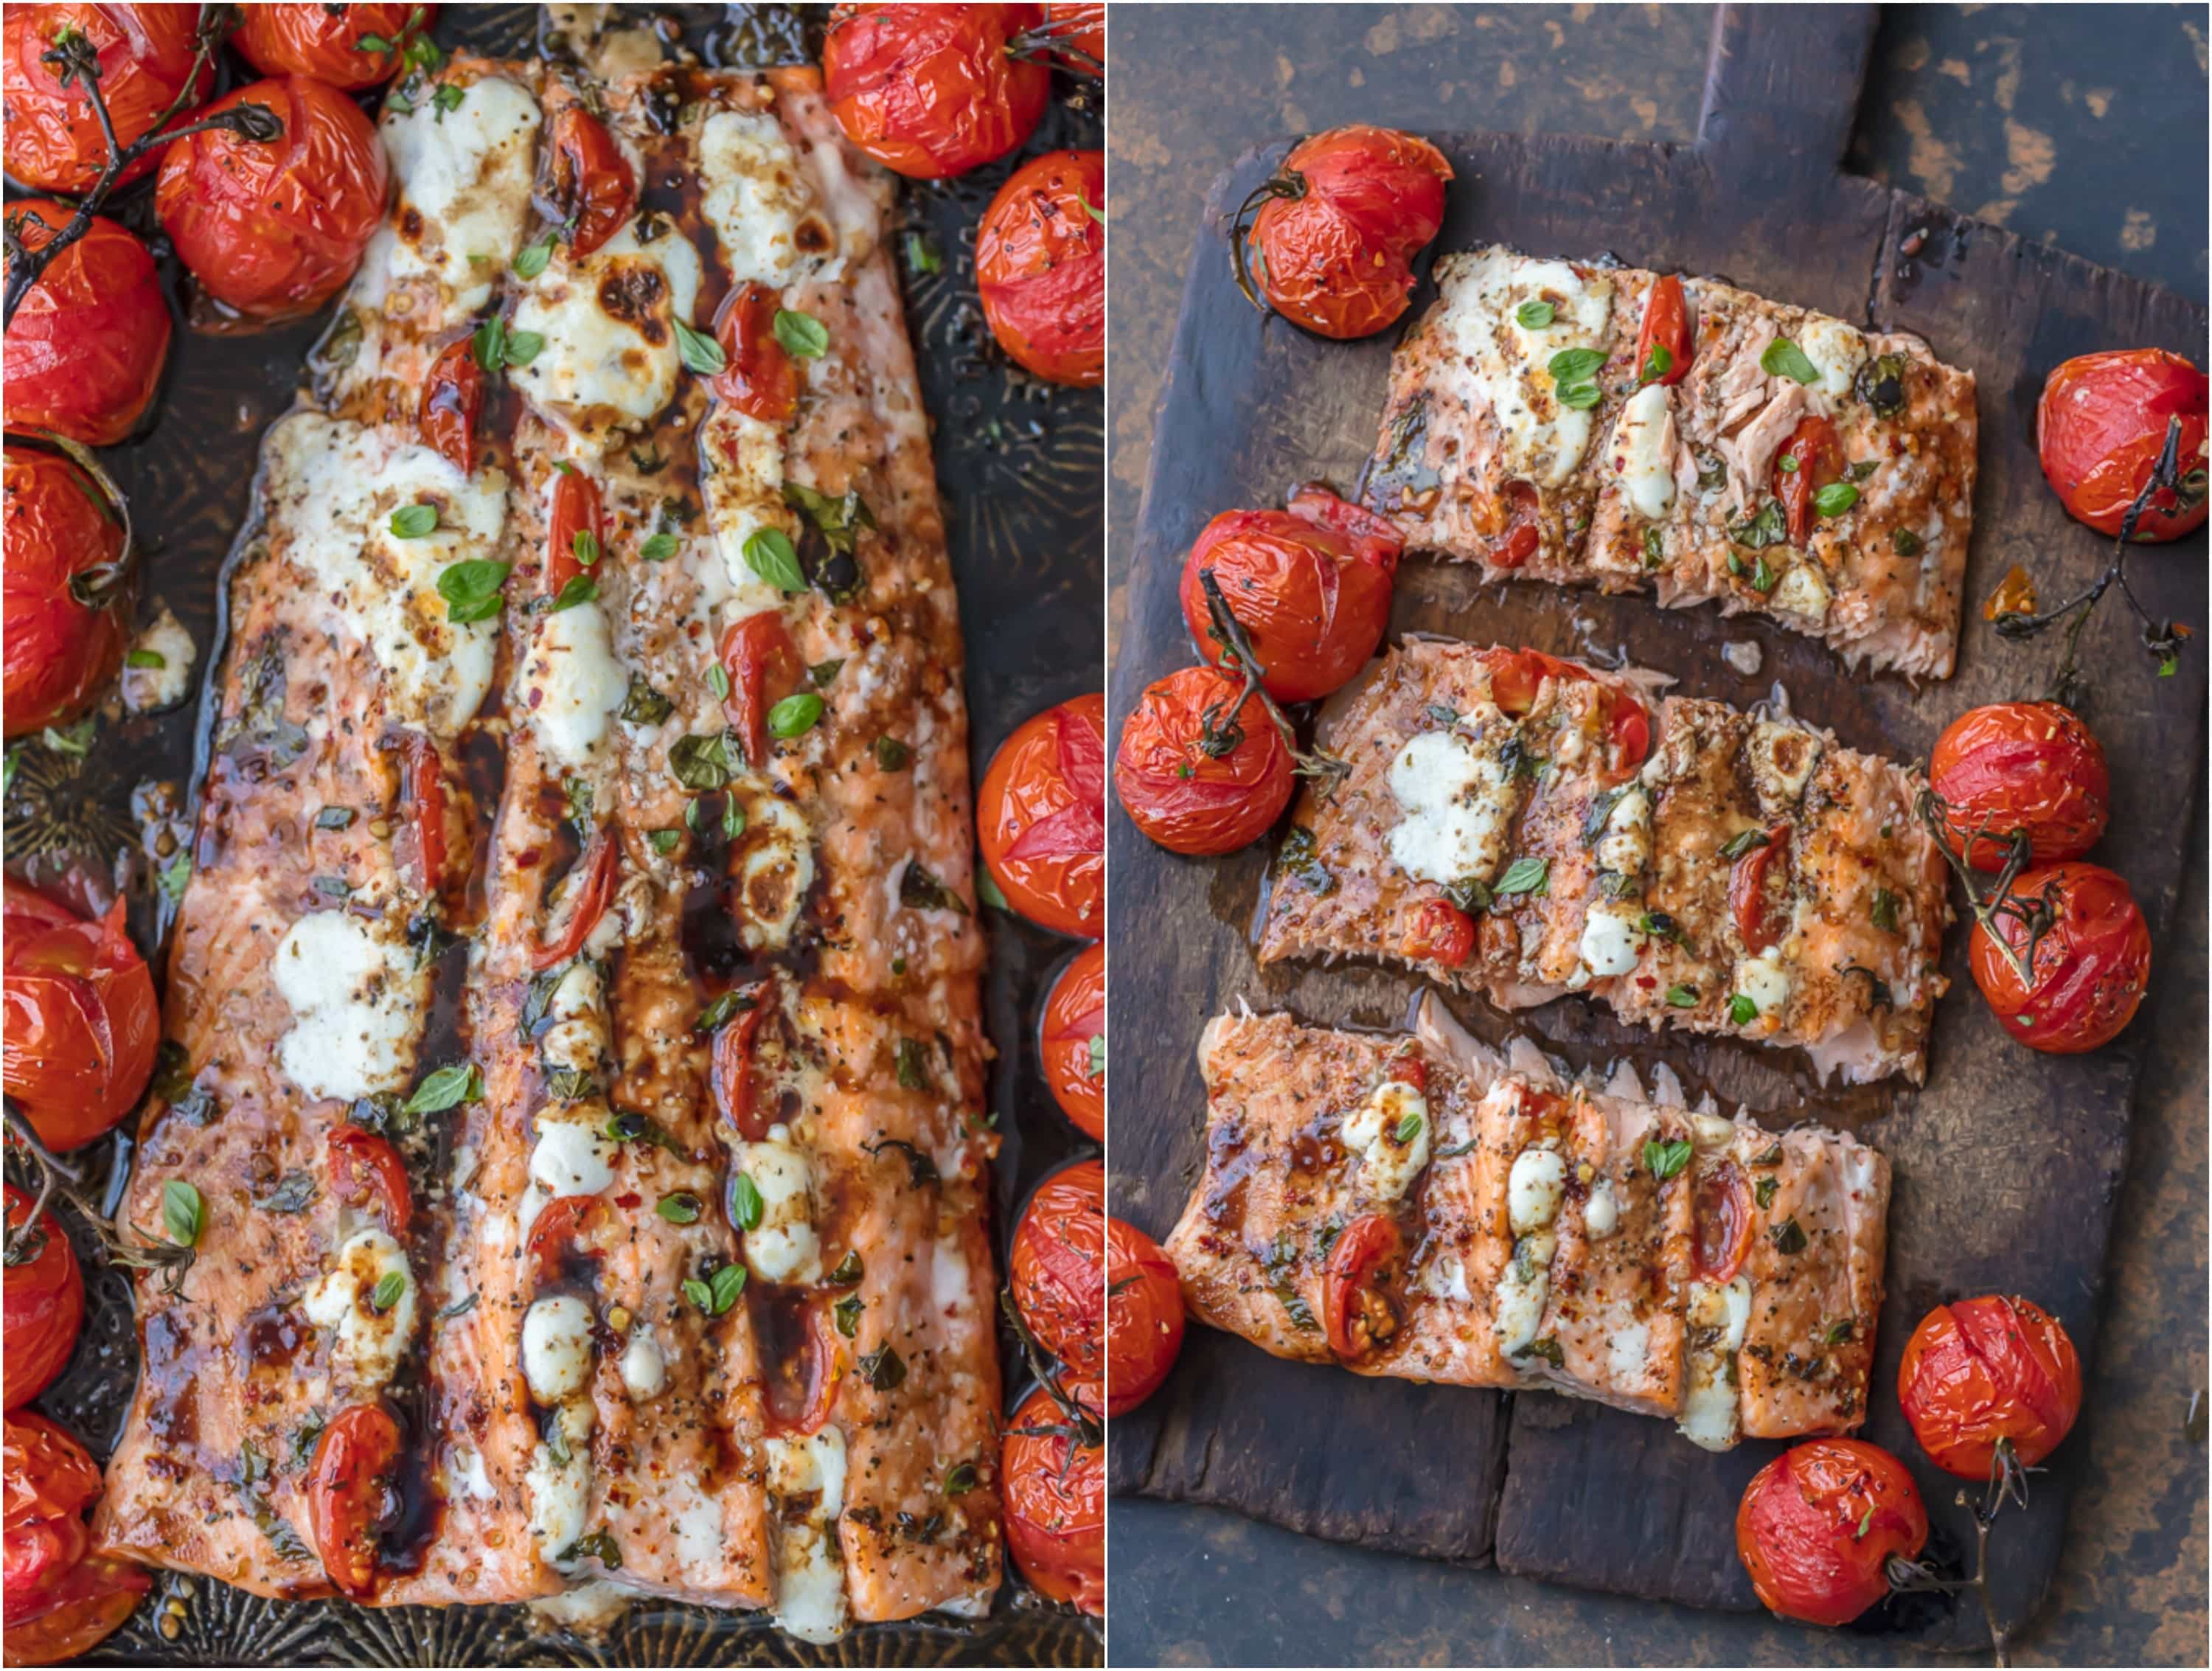 ONE PAN MEAL This CAPRESE STUFFED SALMON with BALSAMIC ROASTED TOMATOES will be your new favorite sheet pan dinner! This easy one dish salmon meal is loaded with flavor and oh so easy. Sure to please!